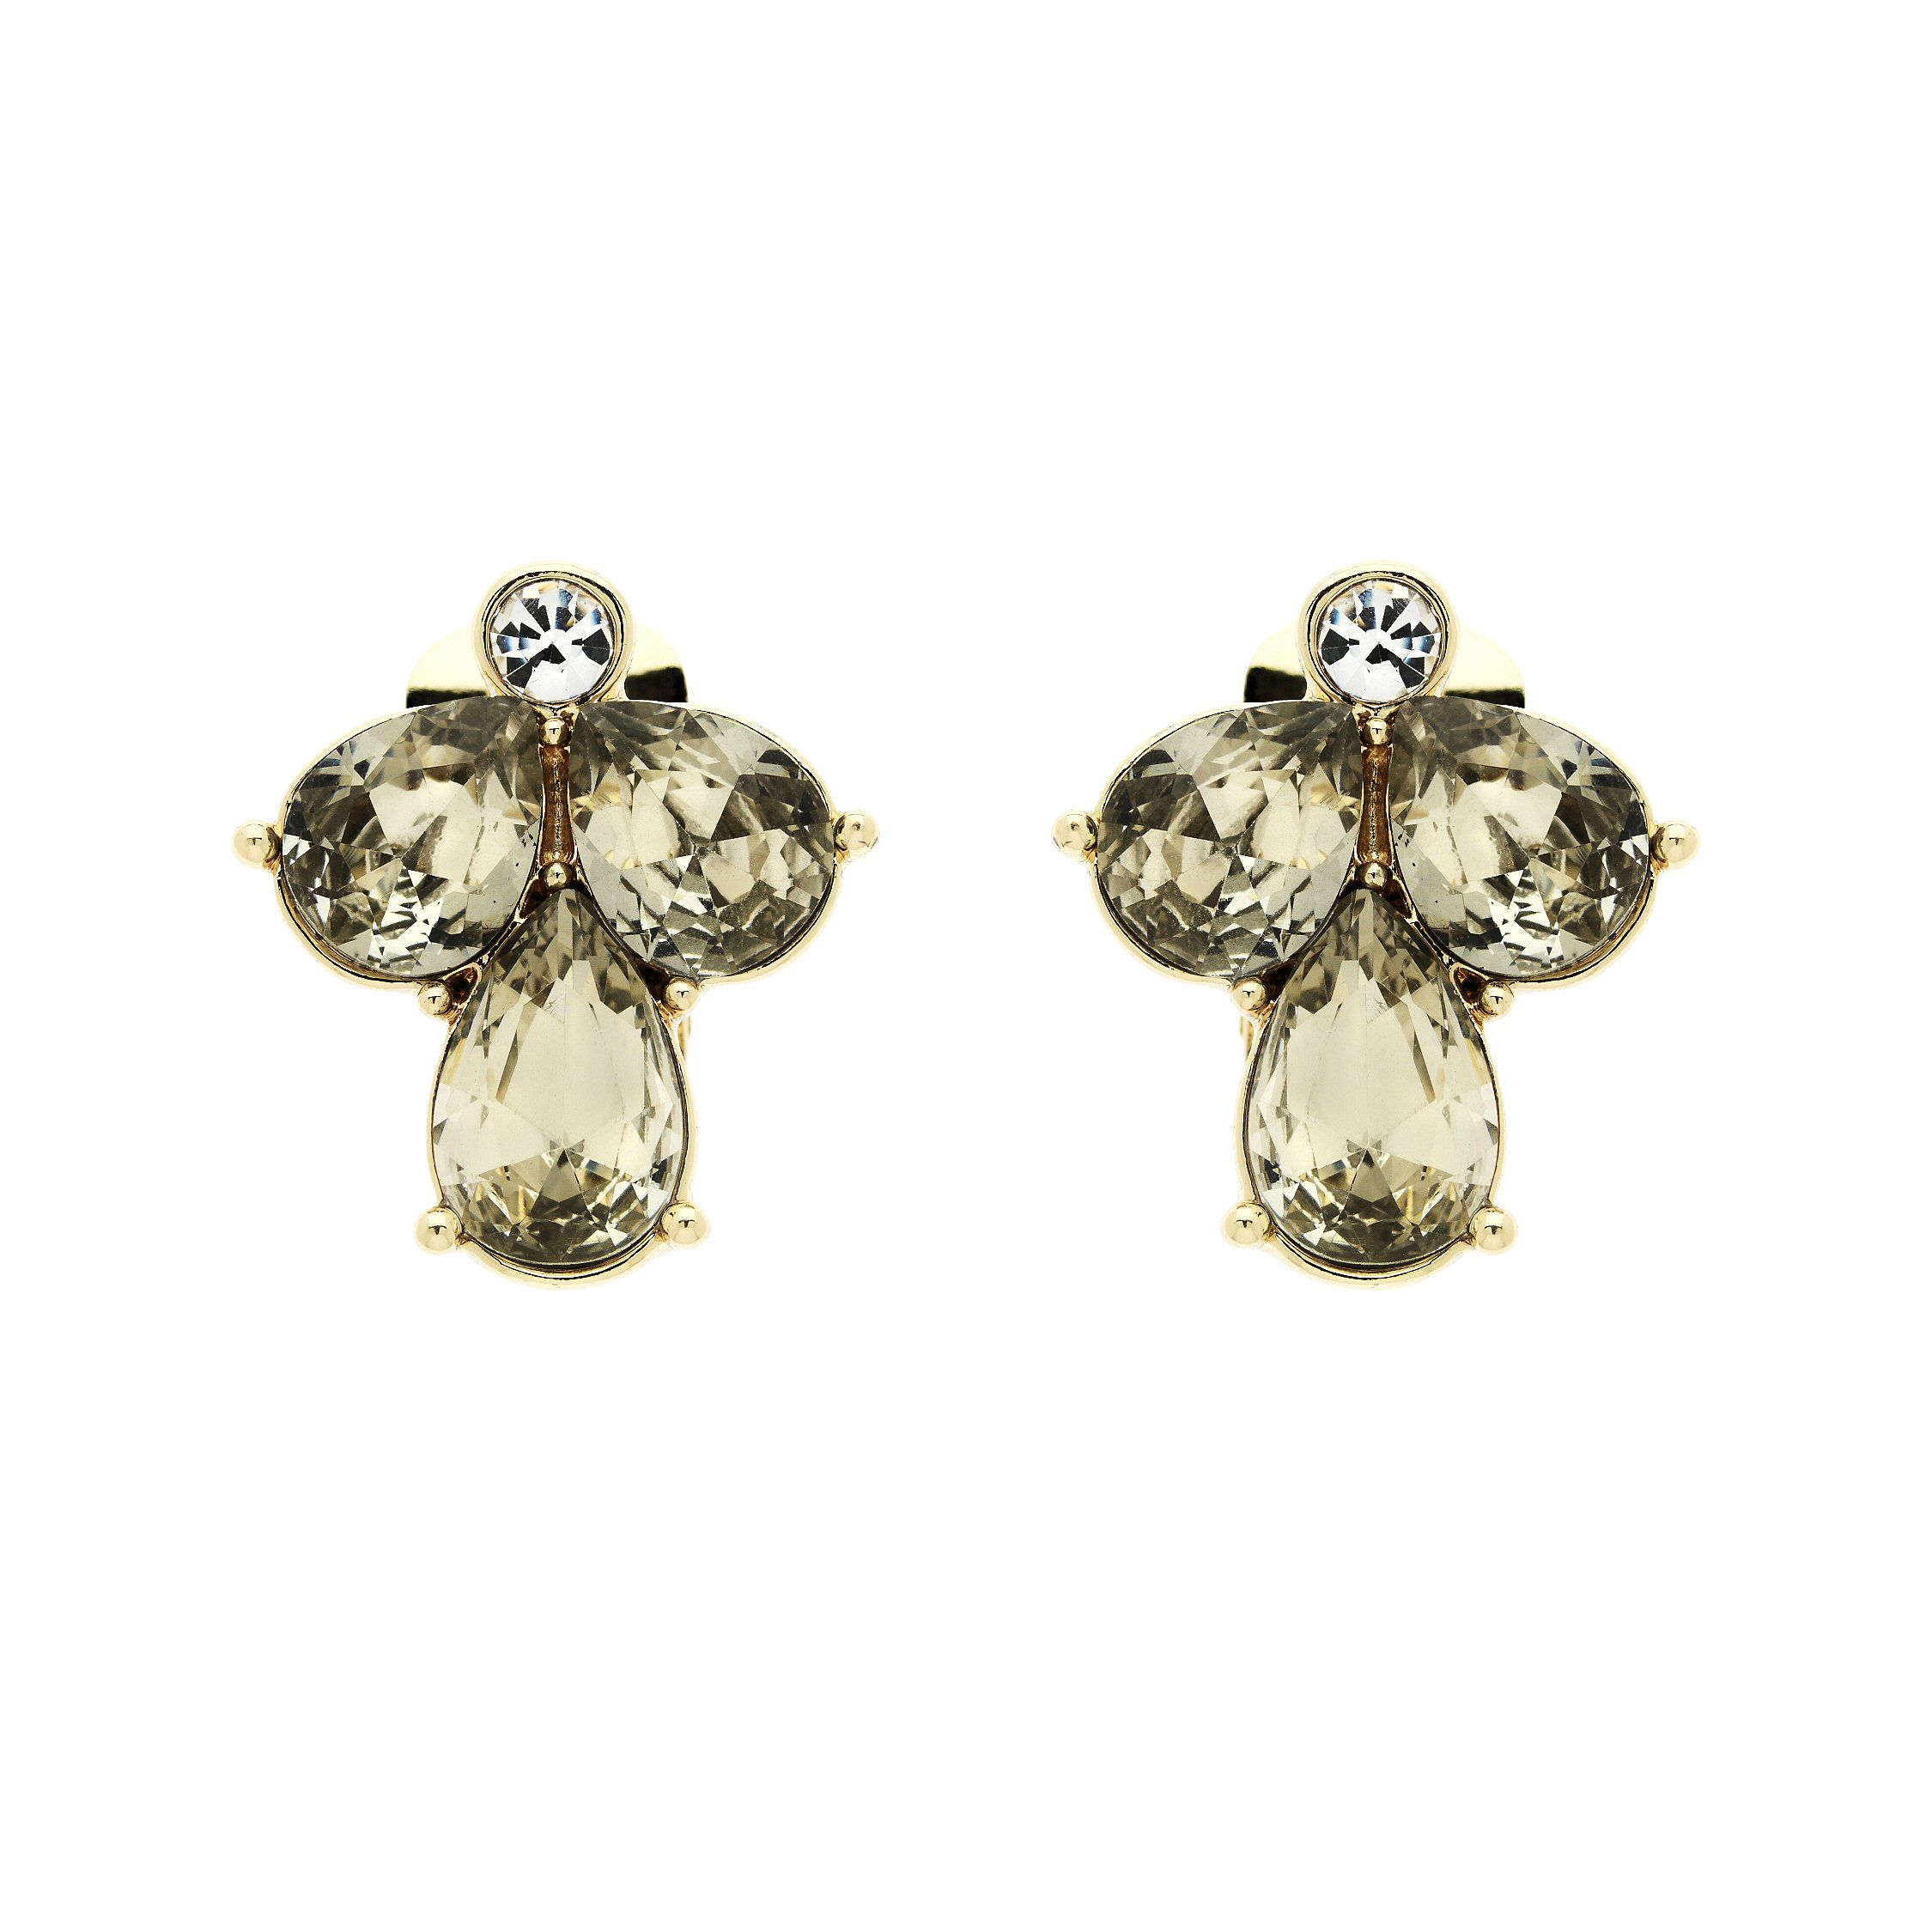 Monet Gold Champagne Drops Clip Earrings, Gold